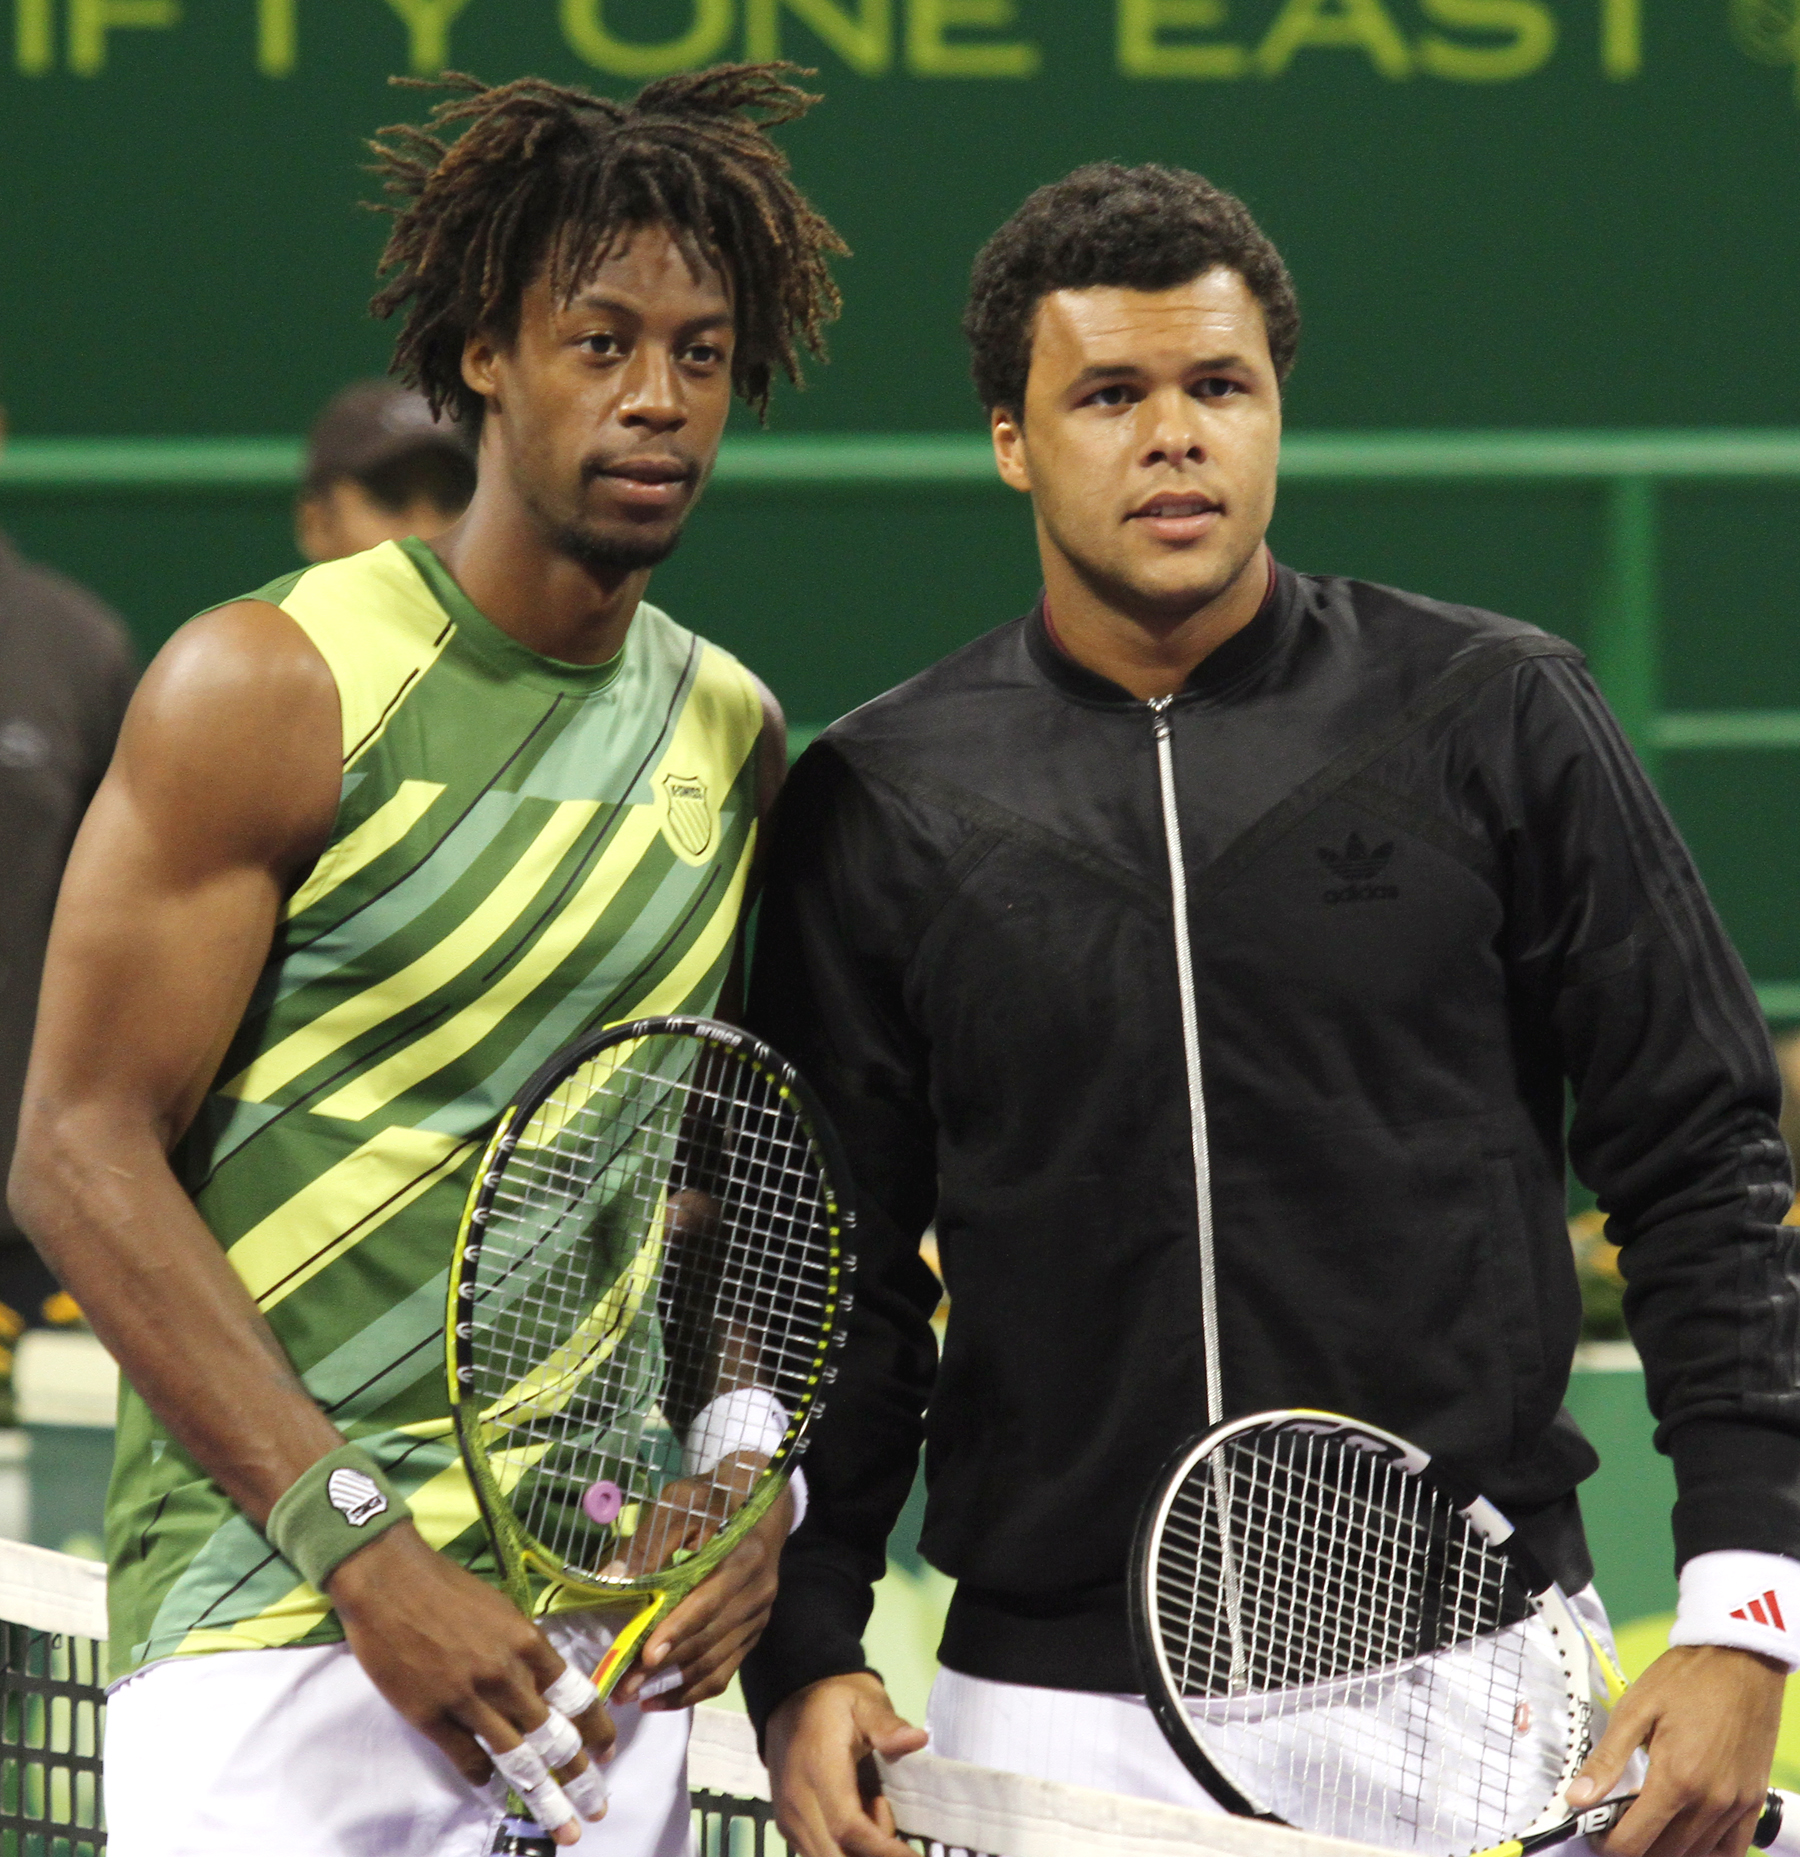 Tennis Players Gael Monfils and Jo Wilfried Tsonga